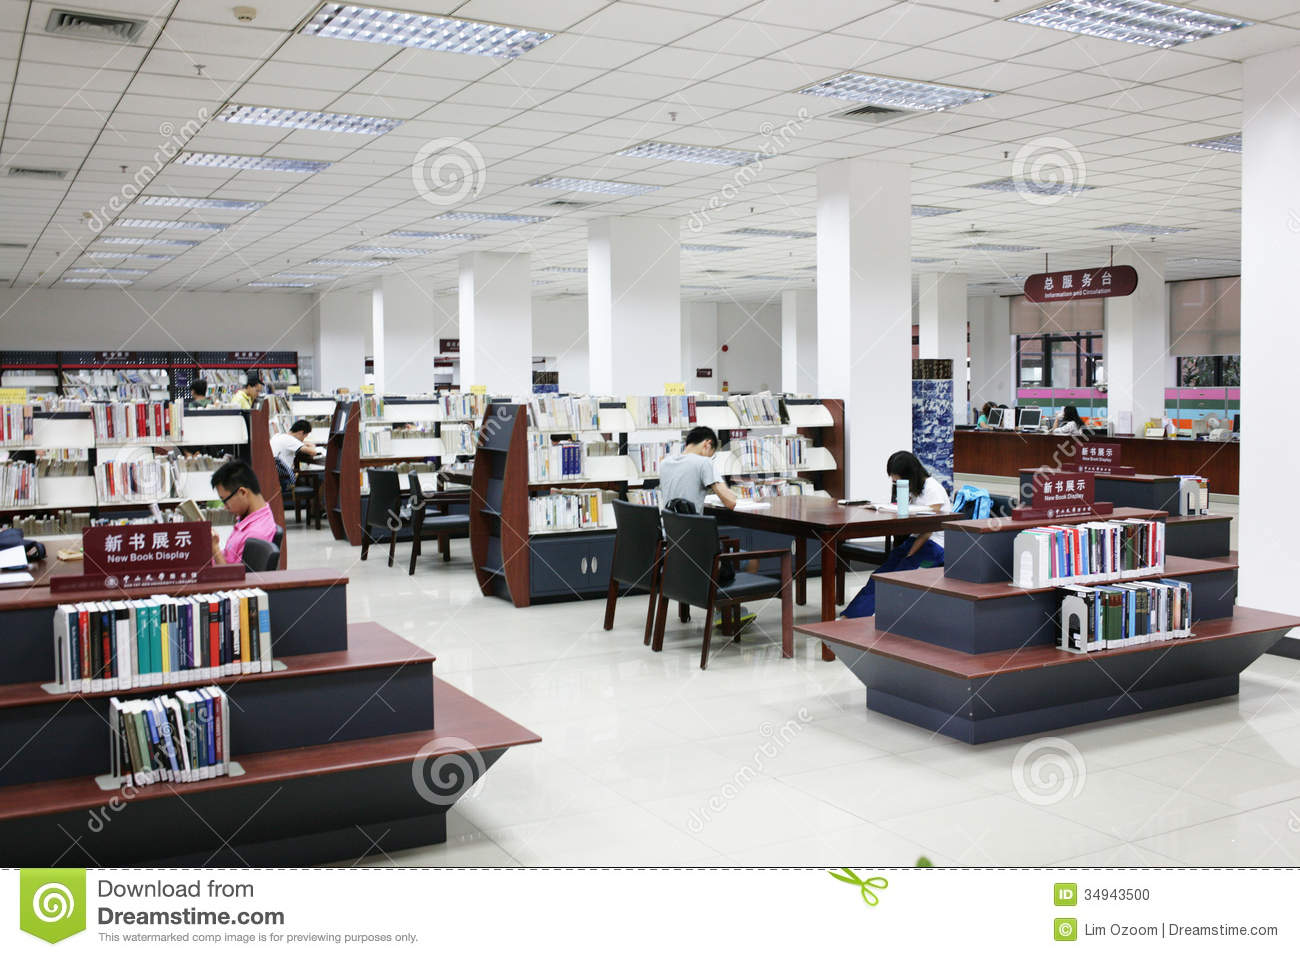 Library university students pictures to pin on pinterest - p.